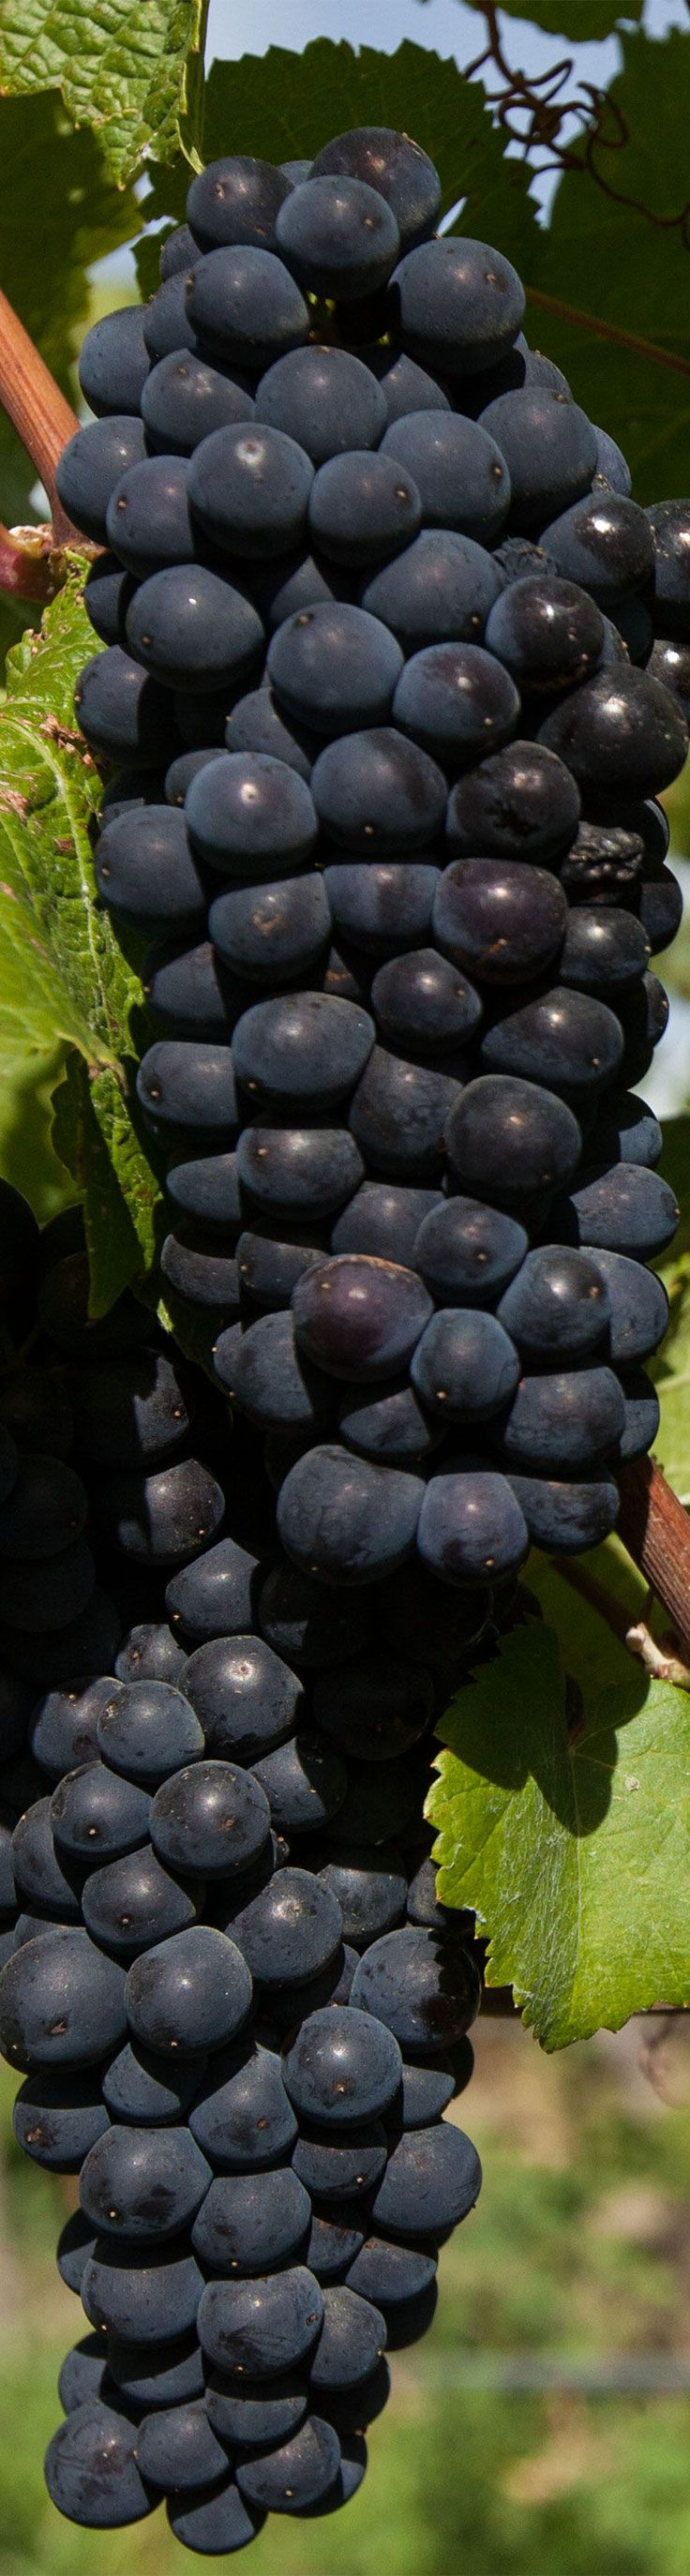 Here's what our PinotNoir looked before the 2014 harvest. This is from one of our Bendigo vineyards located in Central Otago wine country in the South Island of New Zealand.